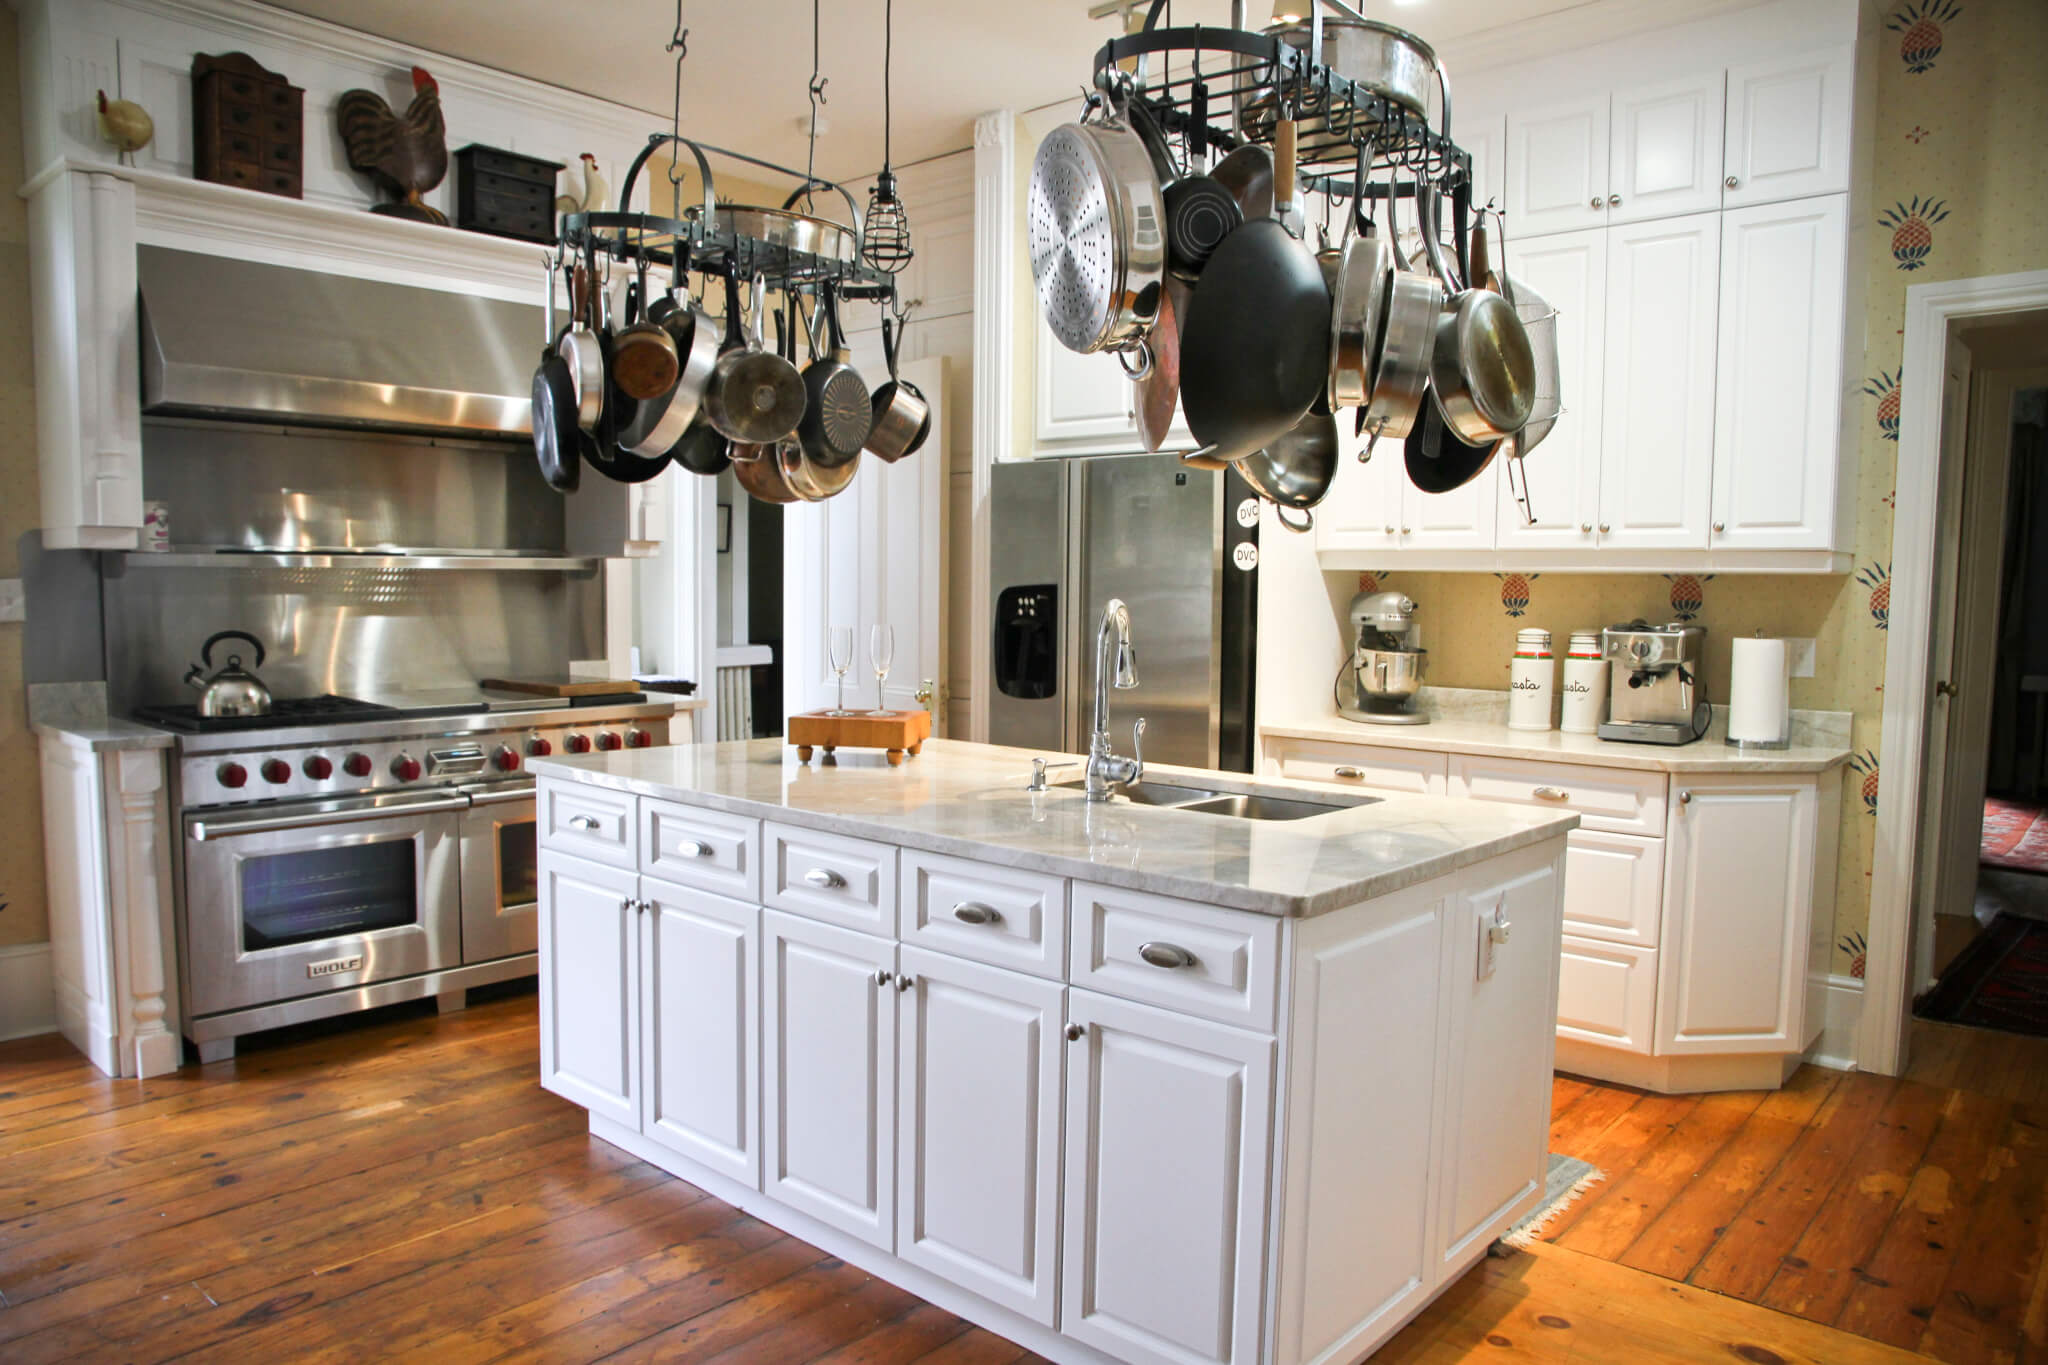 Should You Paint Or Replace Your Kitchen Cabinets